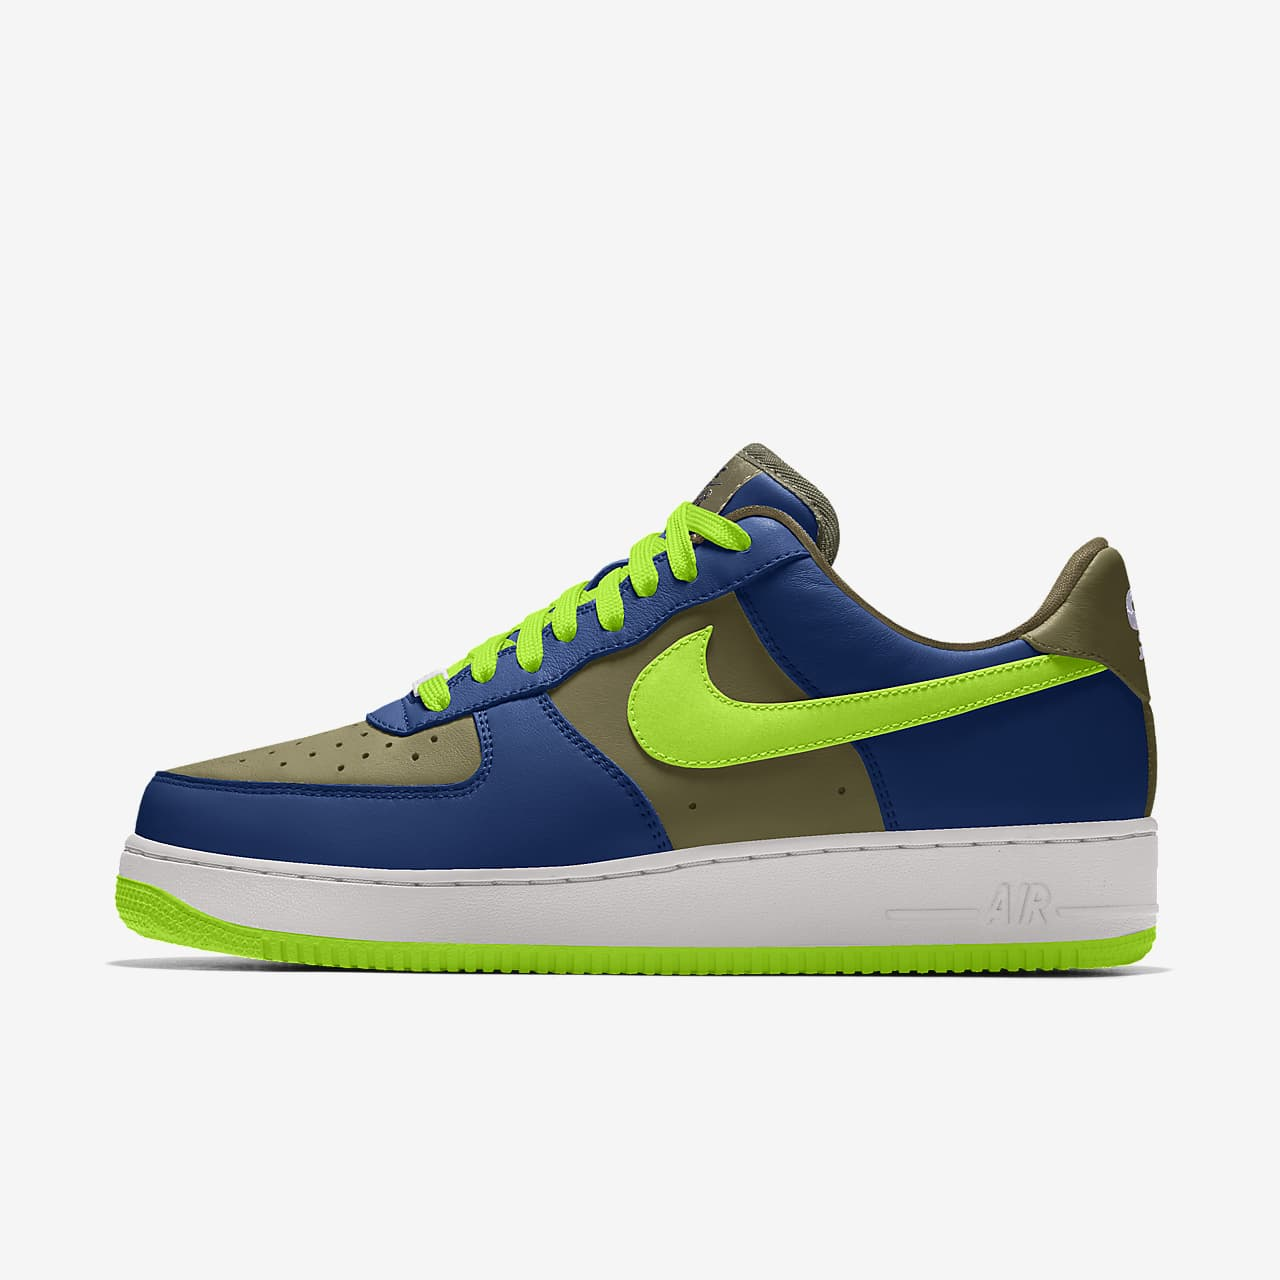 Chaussure personnalisable Nike Air Force 1 Low Unlocked By You